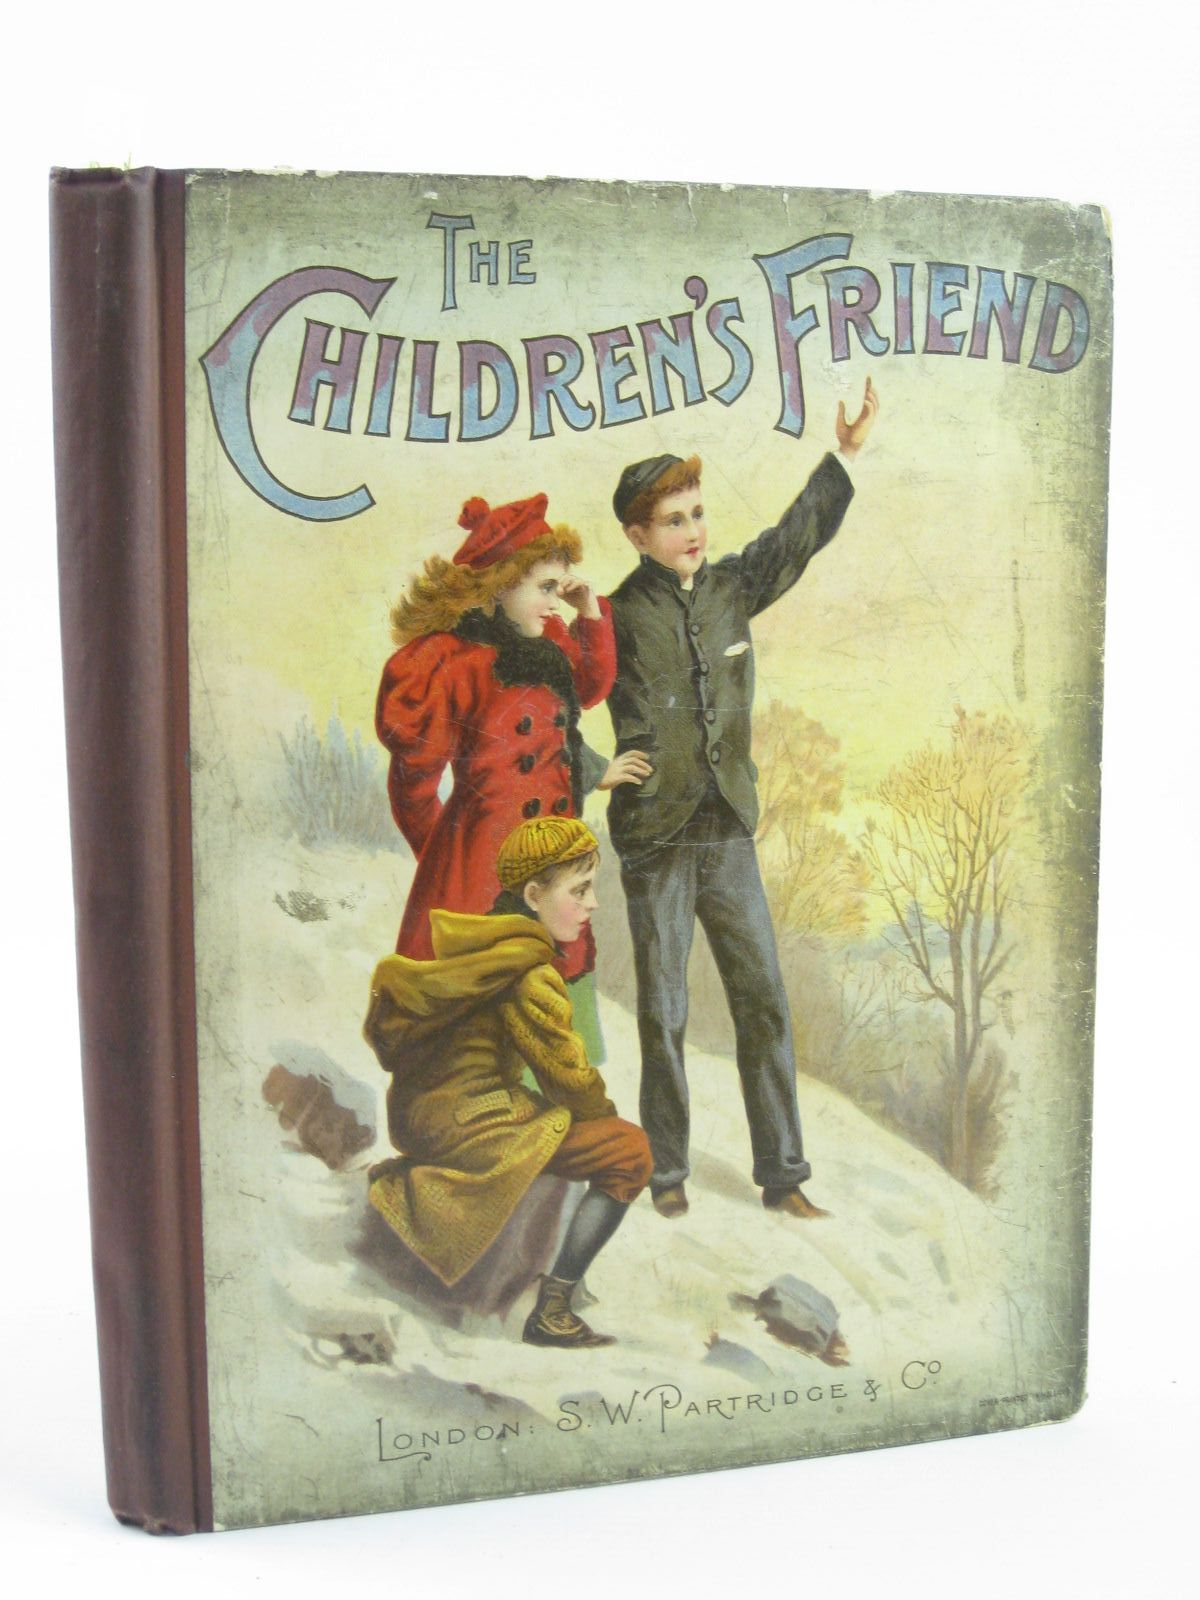 Photo of THE CHILDREN'S FRIEND VOLUME XXXVII - 1897 written by Waterworth, E.M. Potter, F. Scarlett Chappell, Jennie et al,  illustrated by Wain, Louis Soper, George et al.,  published by S.W. Partridge & Co. (STOCK CODE: 1501396)  for sale by Stella & Rose's Books